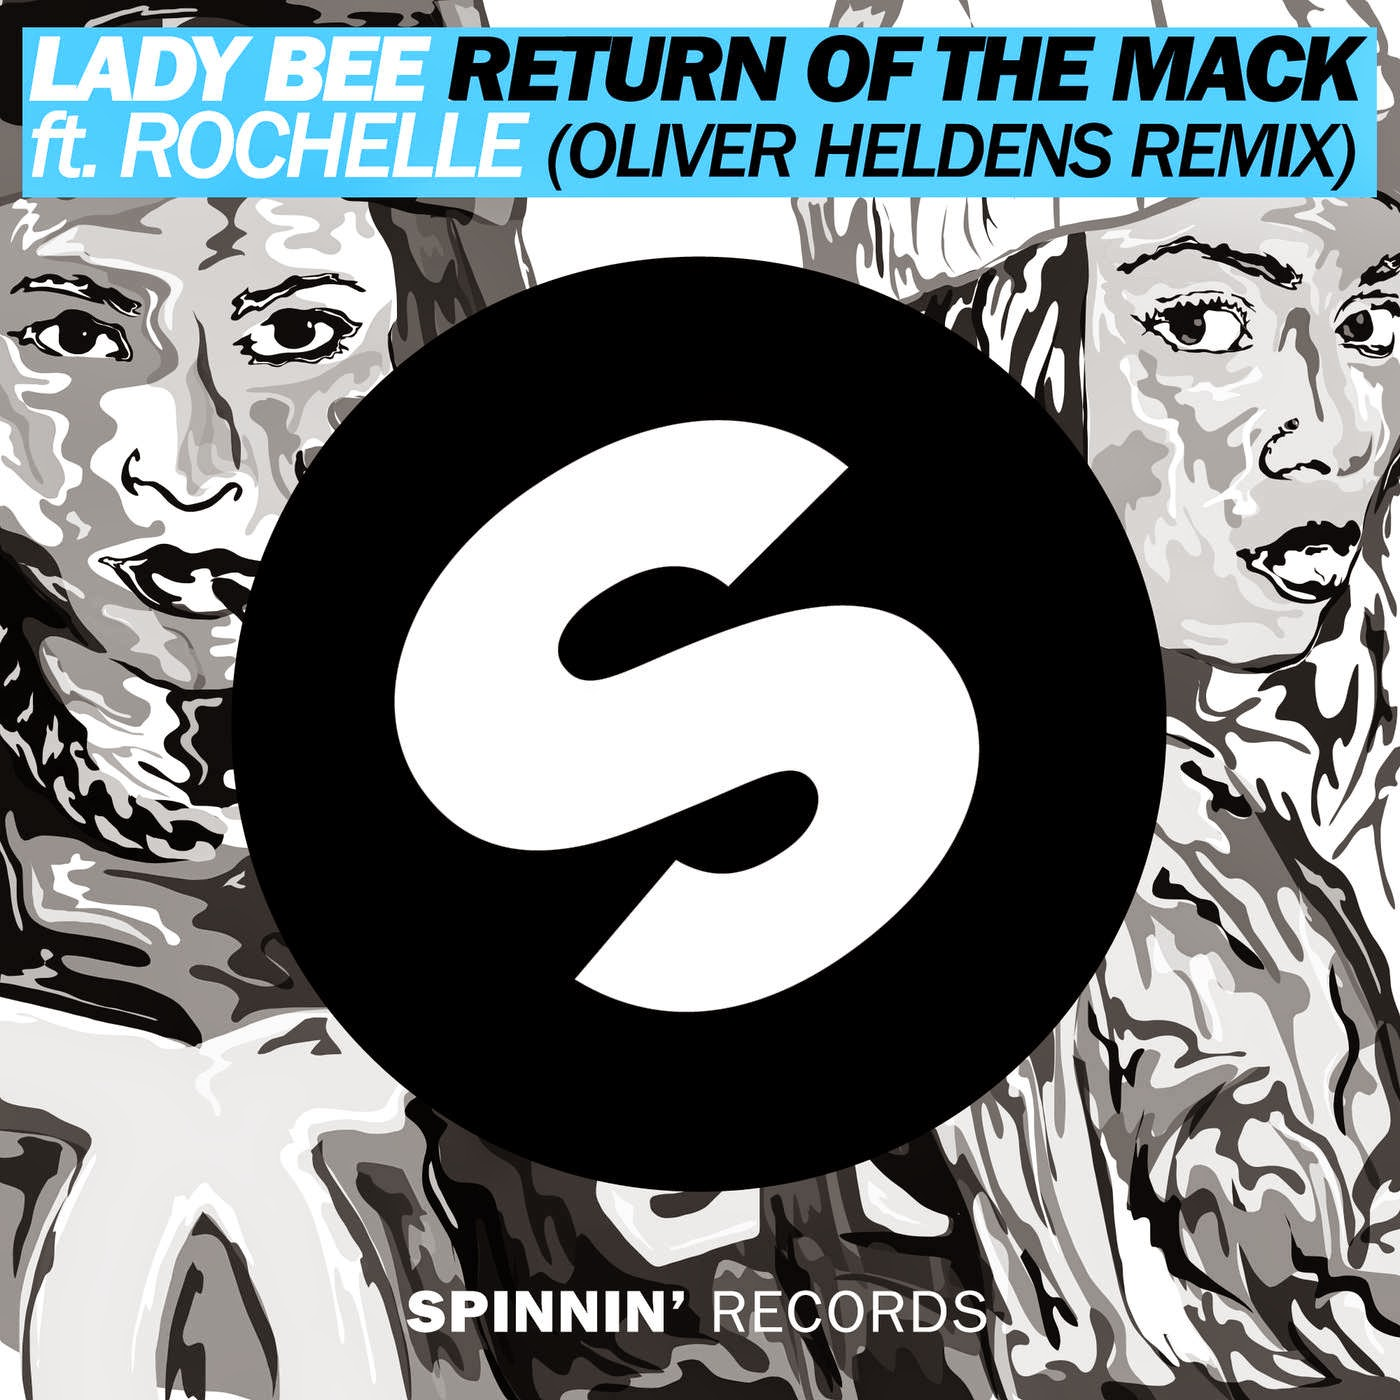 Lady Bee - Return of the Mack (feat. Rochelle) [Oliver Heldens Remix] - Single Cover